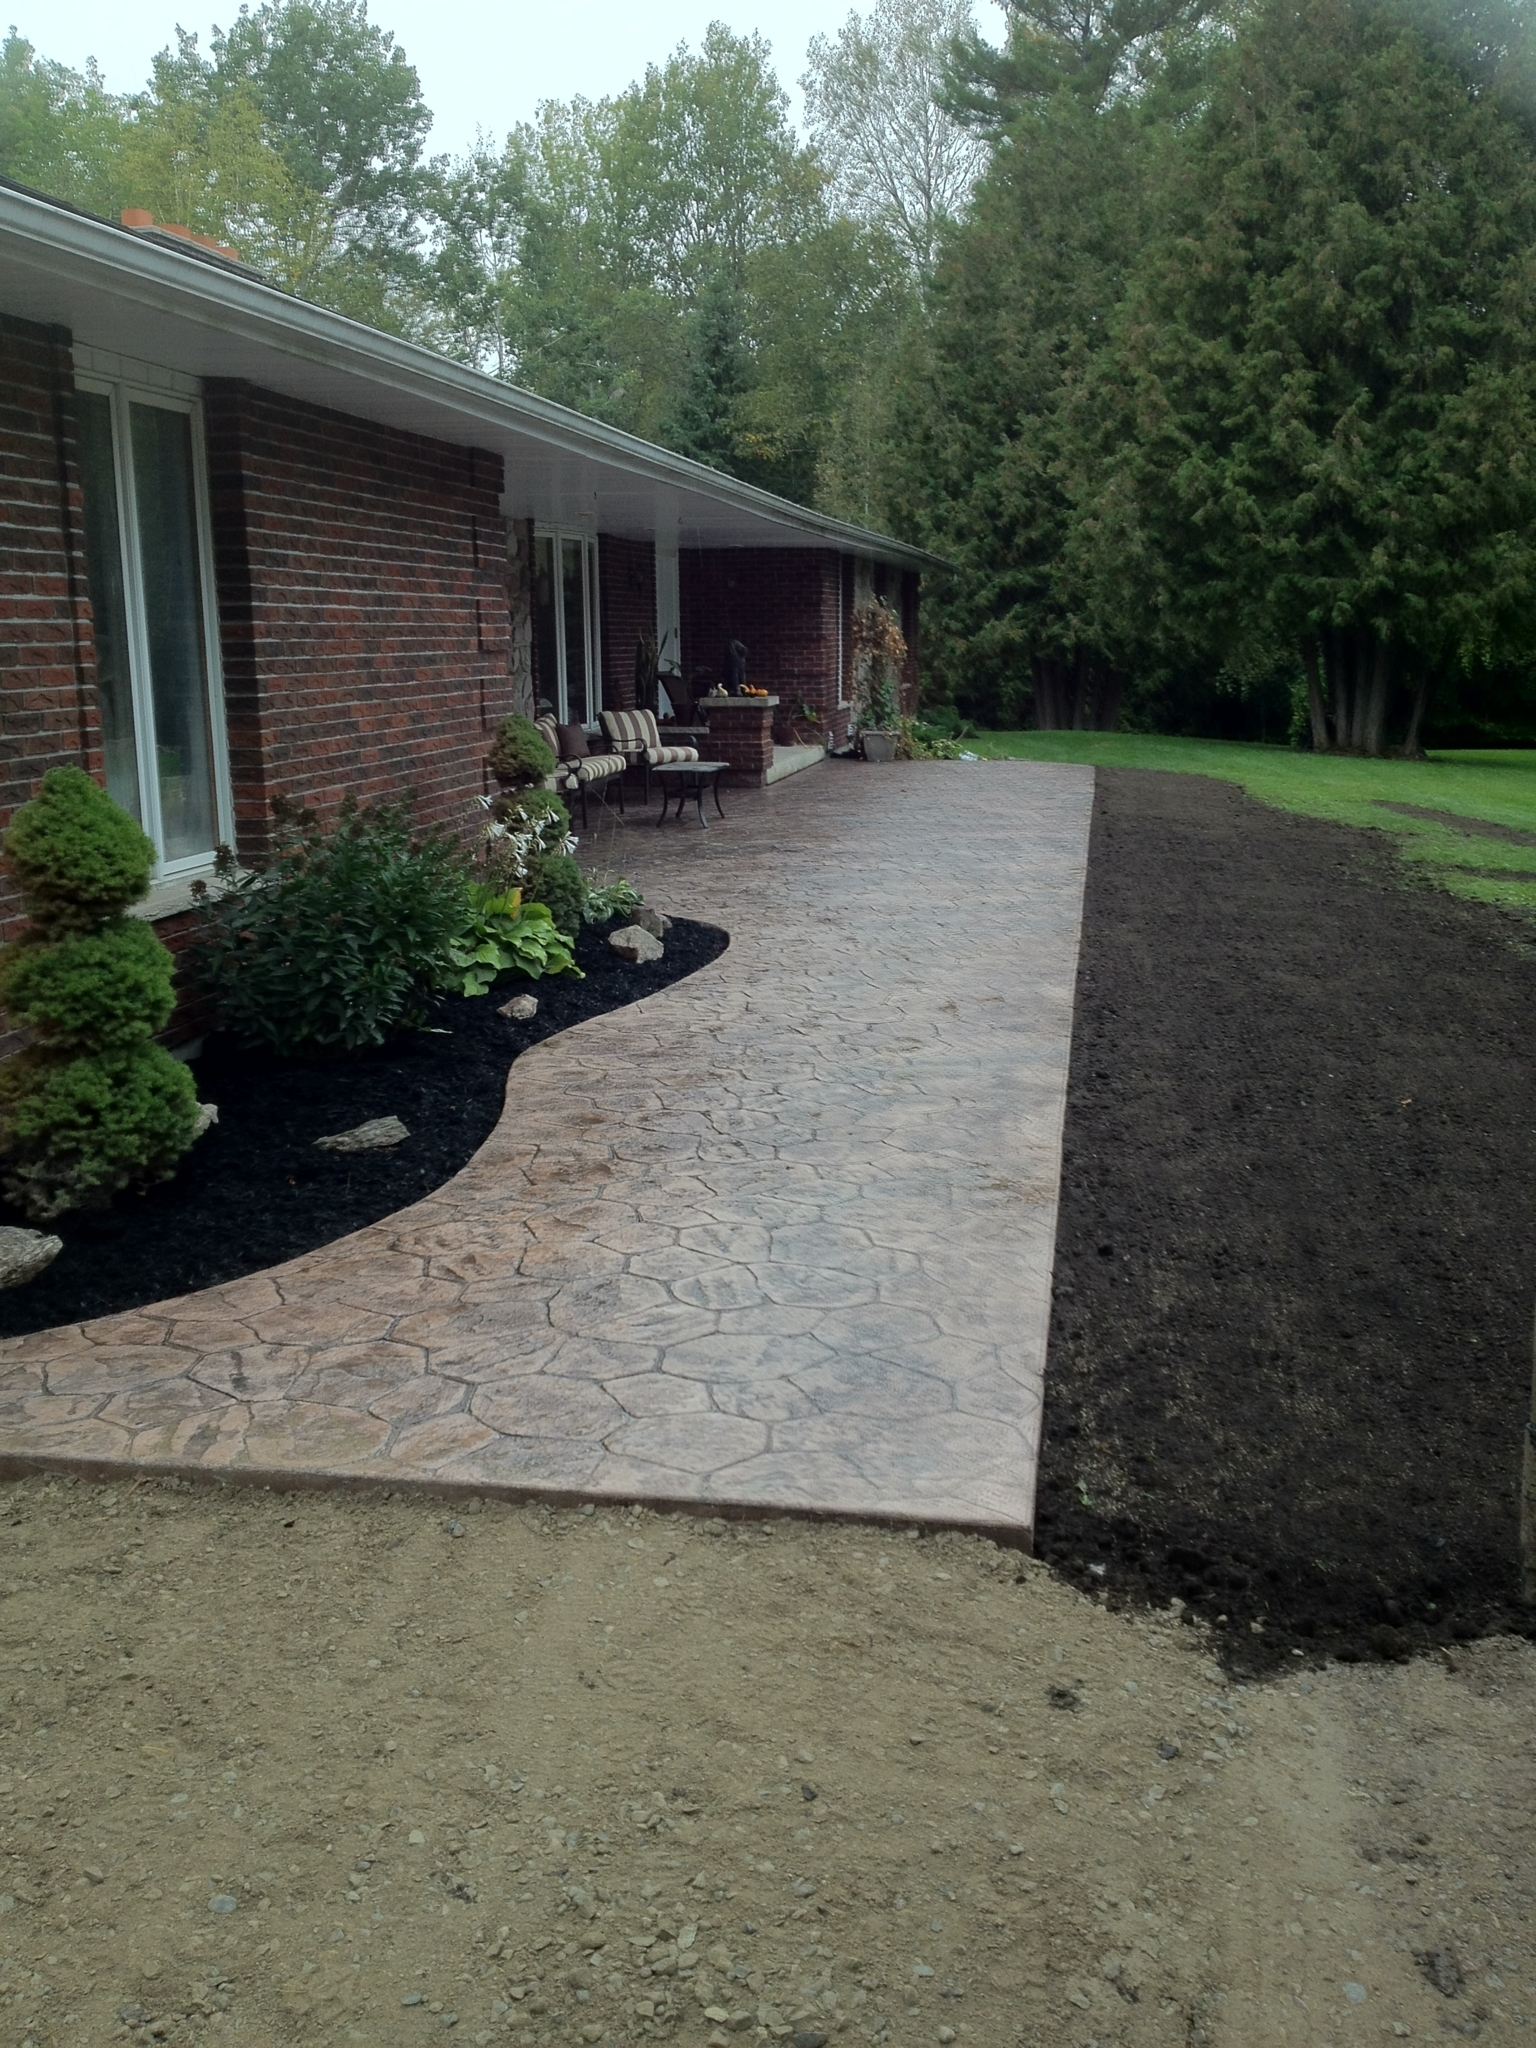 Deep Green Lawn Care & Landscaping